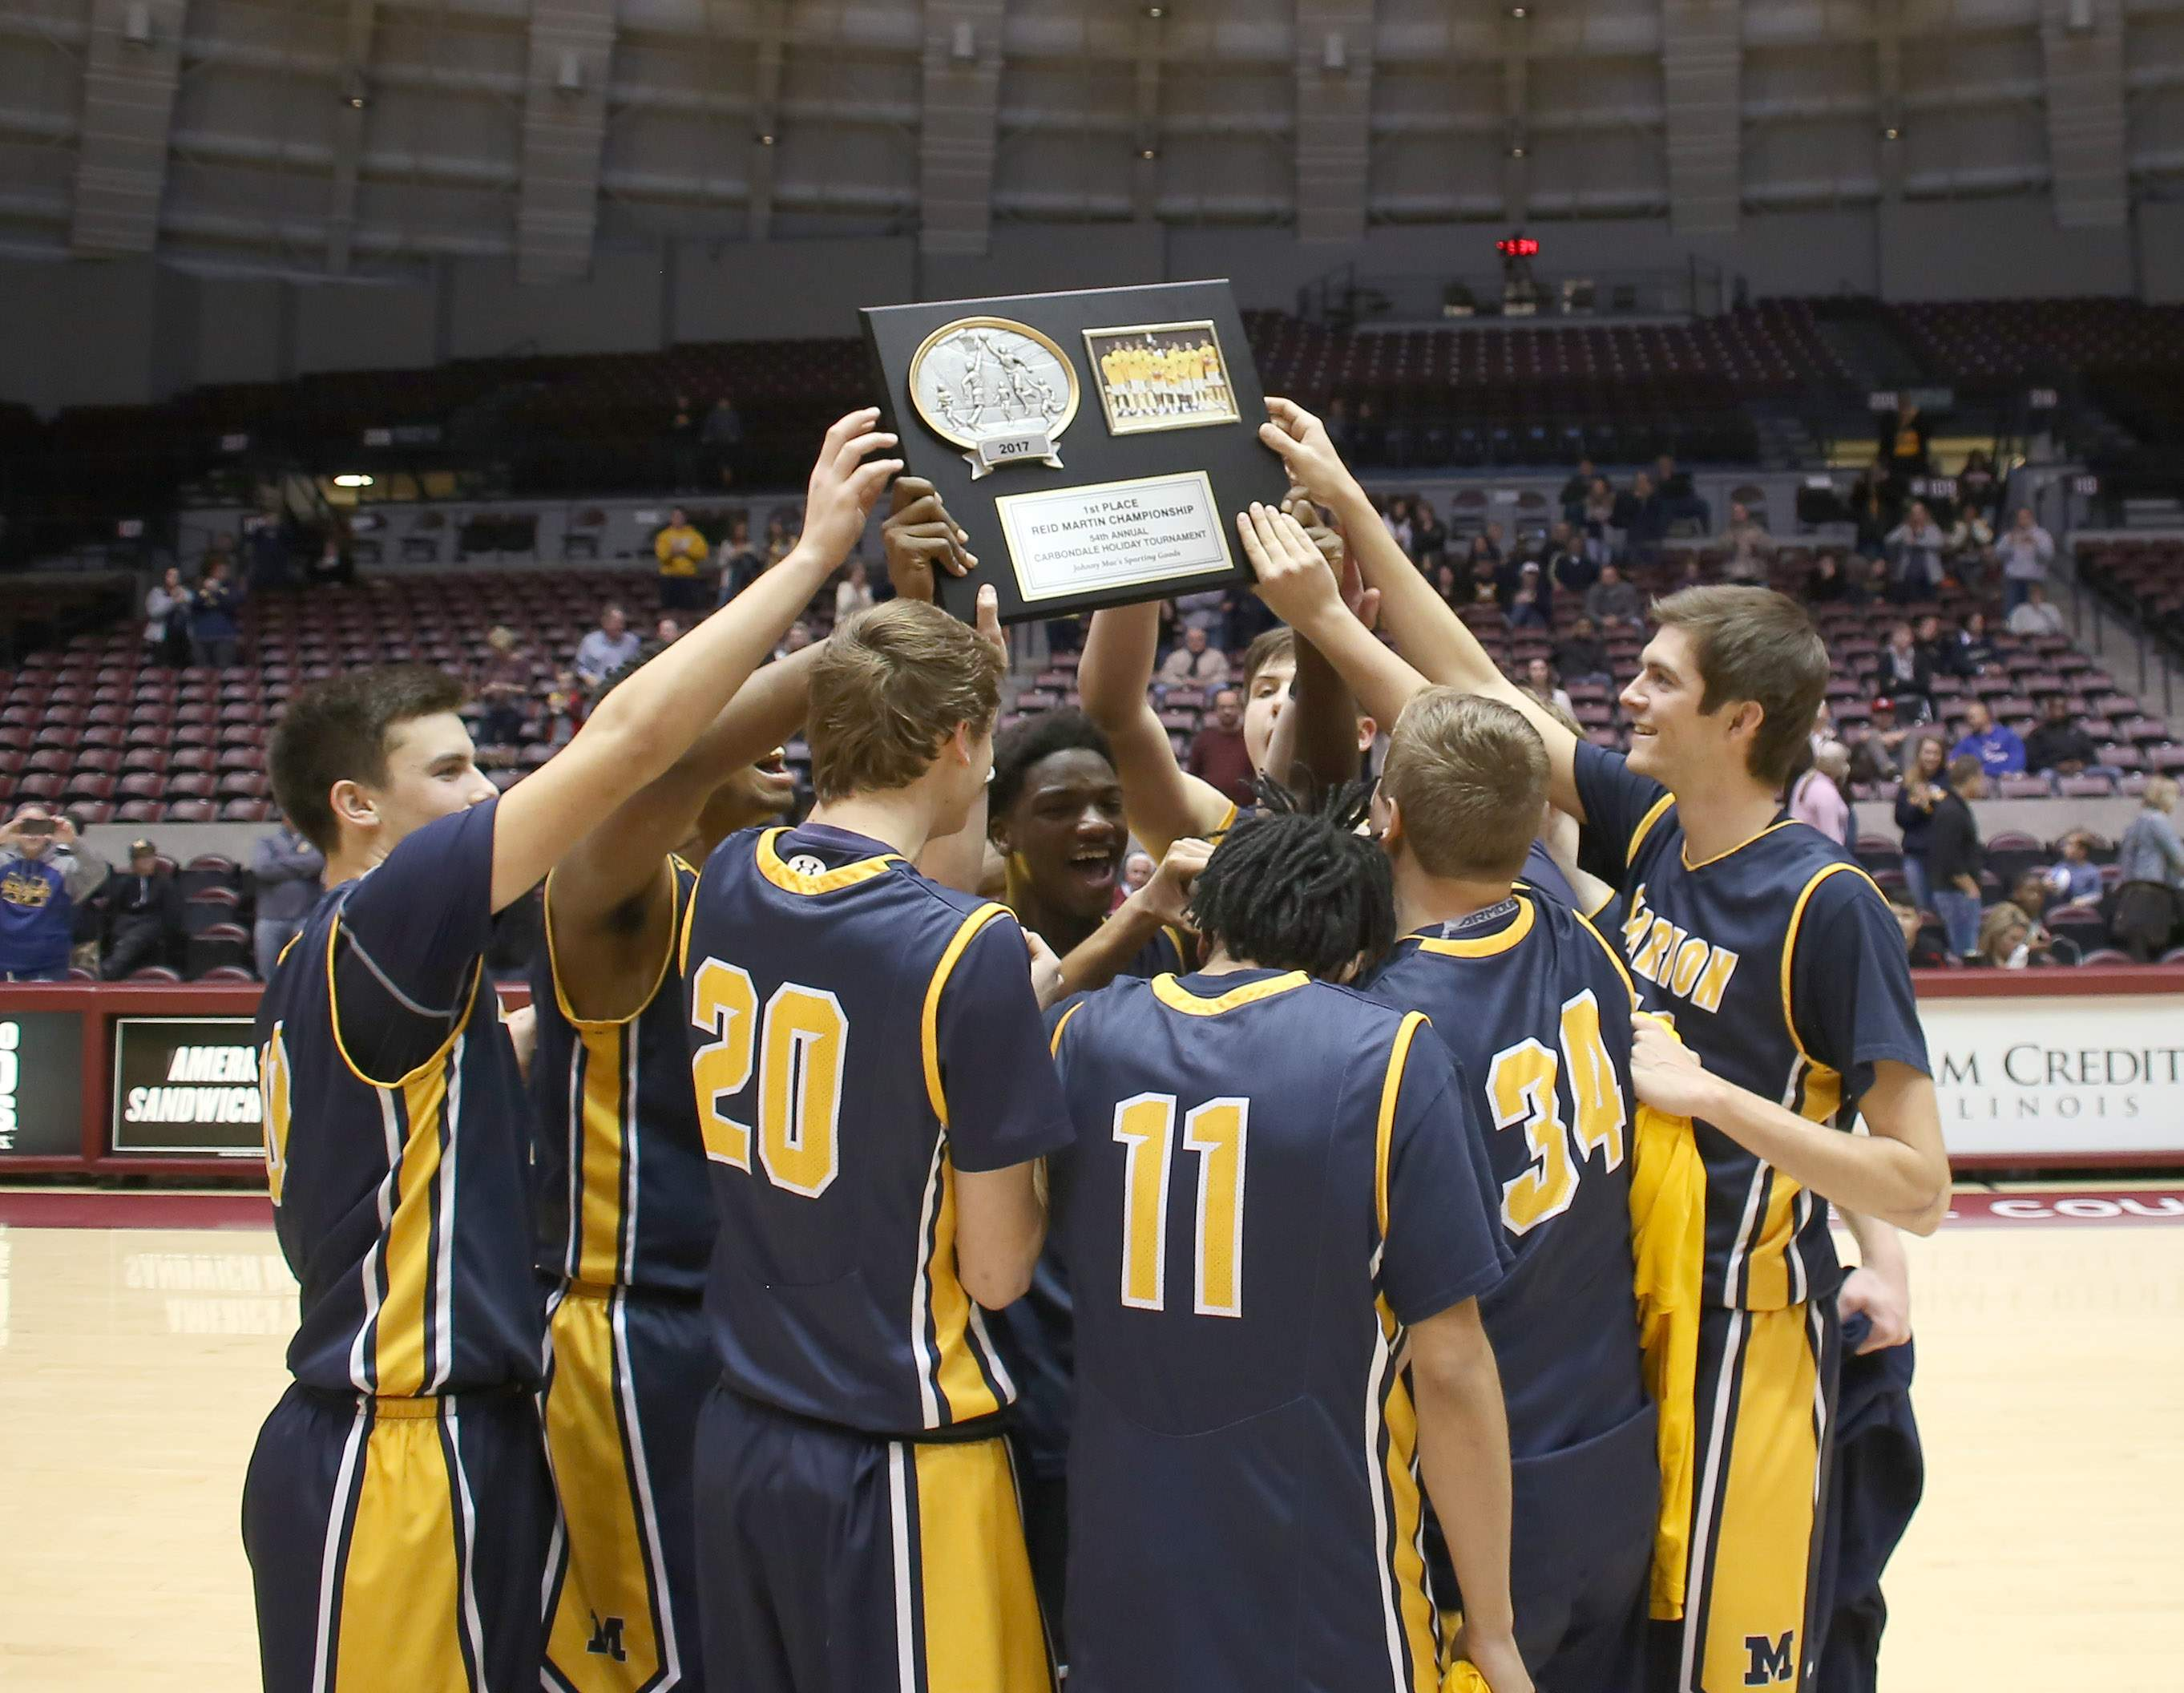 The Marion Wildcats accept the Championship Plus trophy at the 54th annual Carbondale Holiday Tournament on Friday night at SIU Arena.